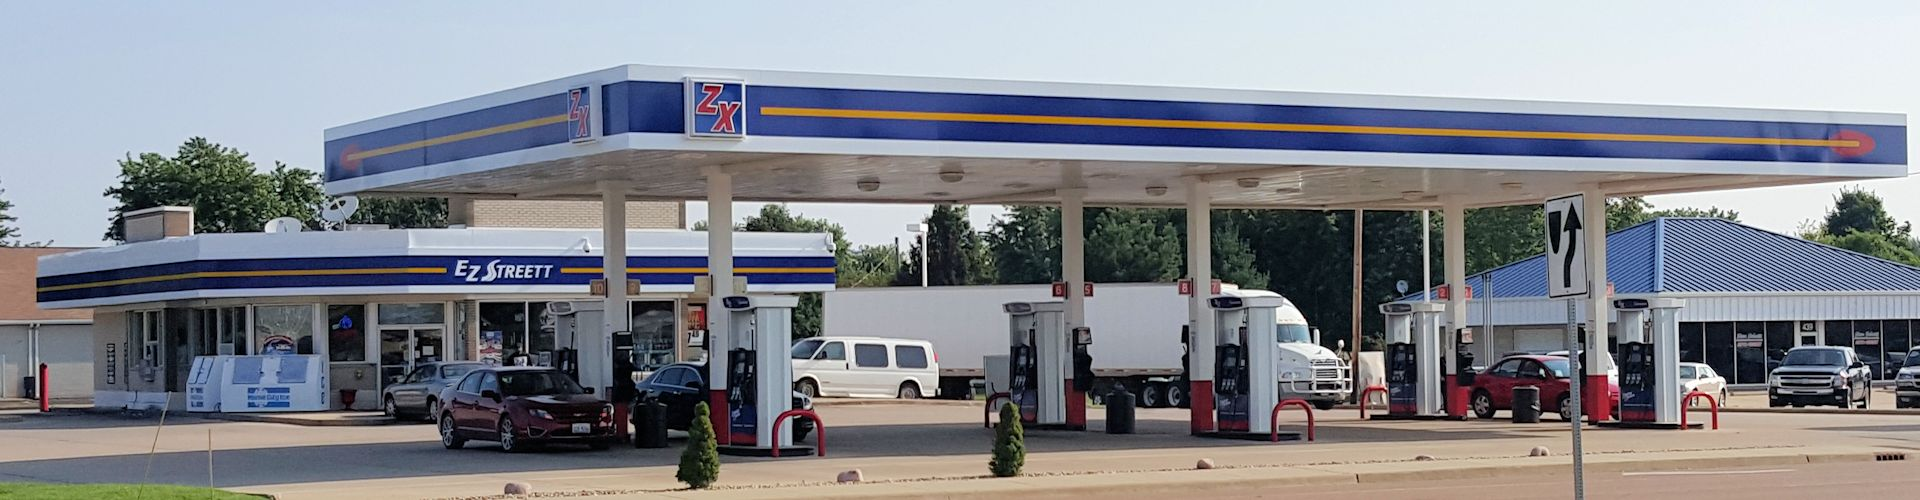 Diesel Gas Station Near Me >> ZX Gas Stations and Stores - ZX Gas Stations and Convenience Stores